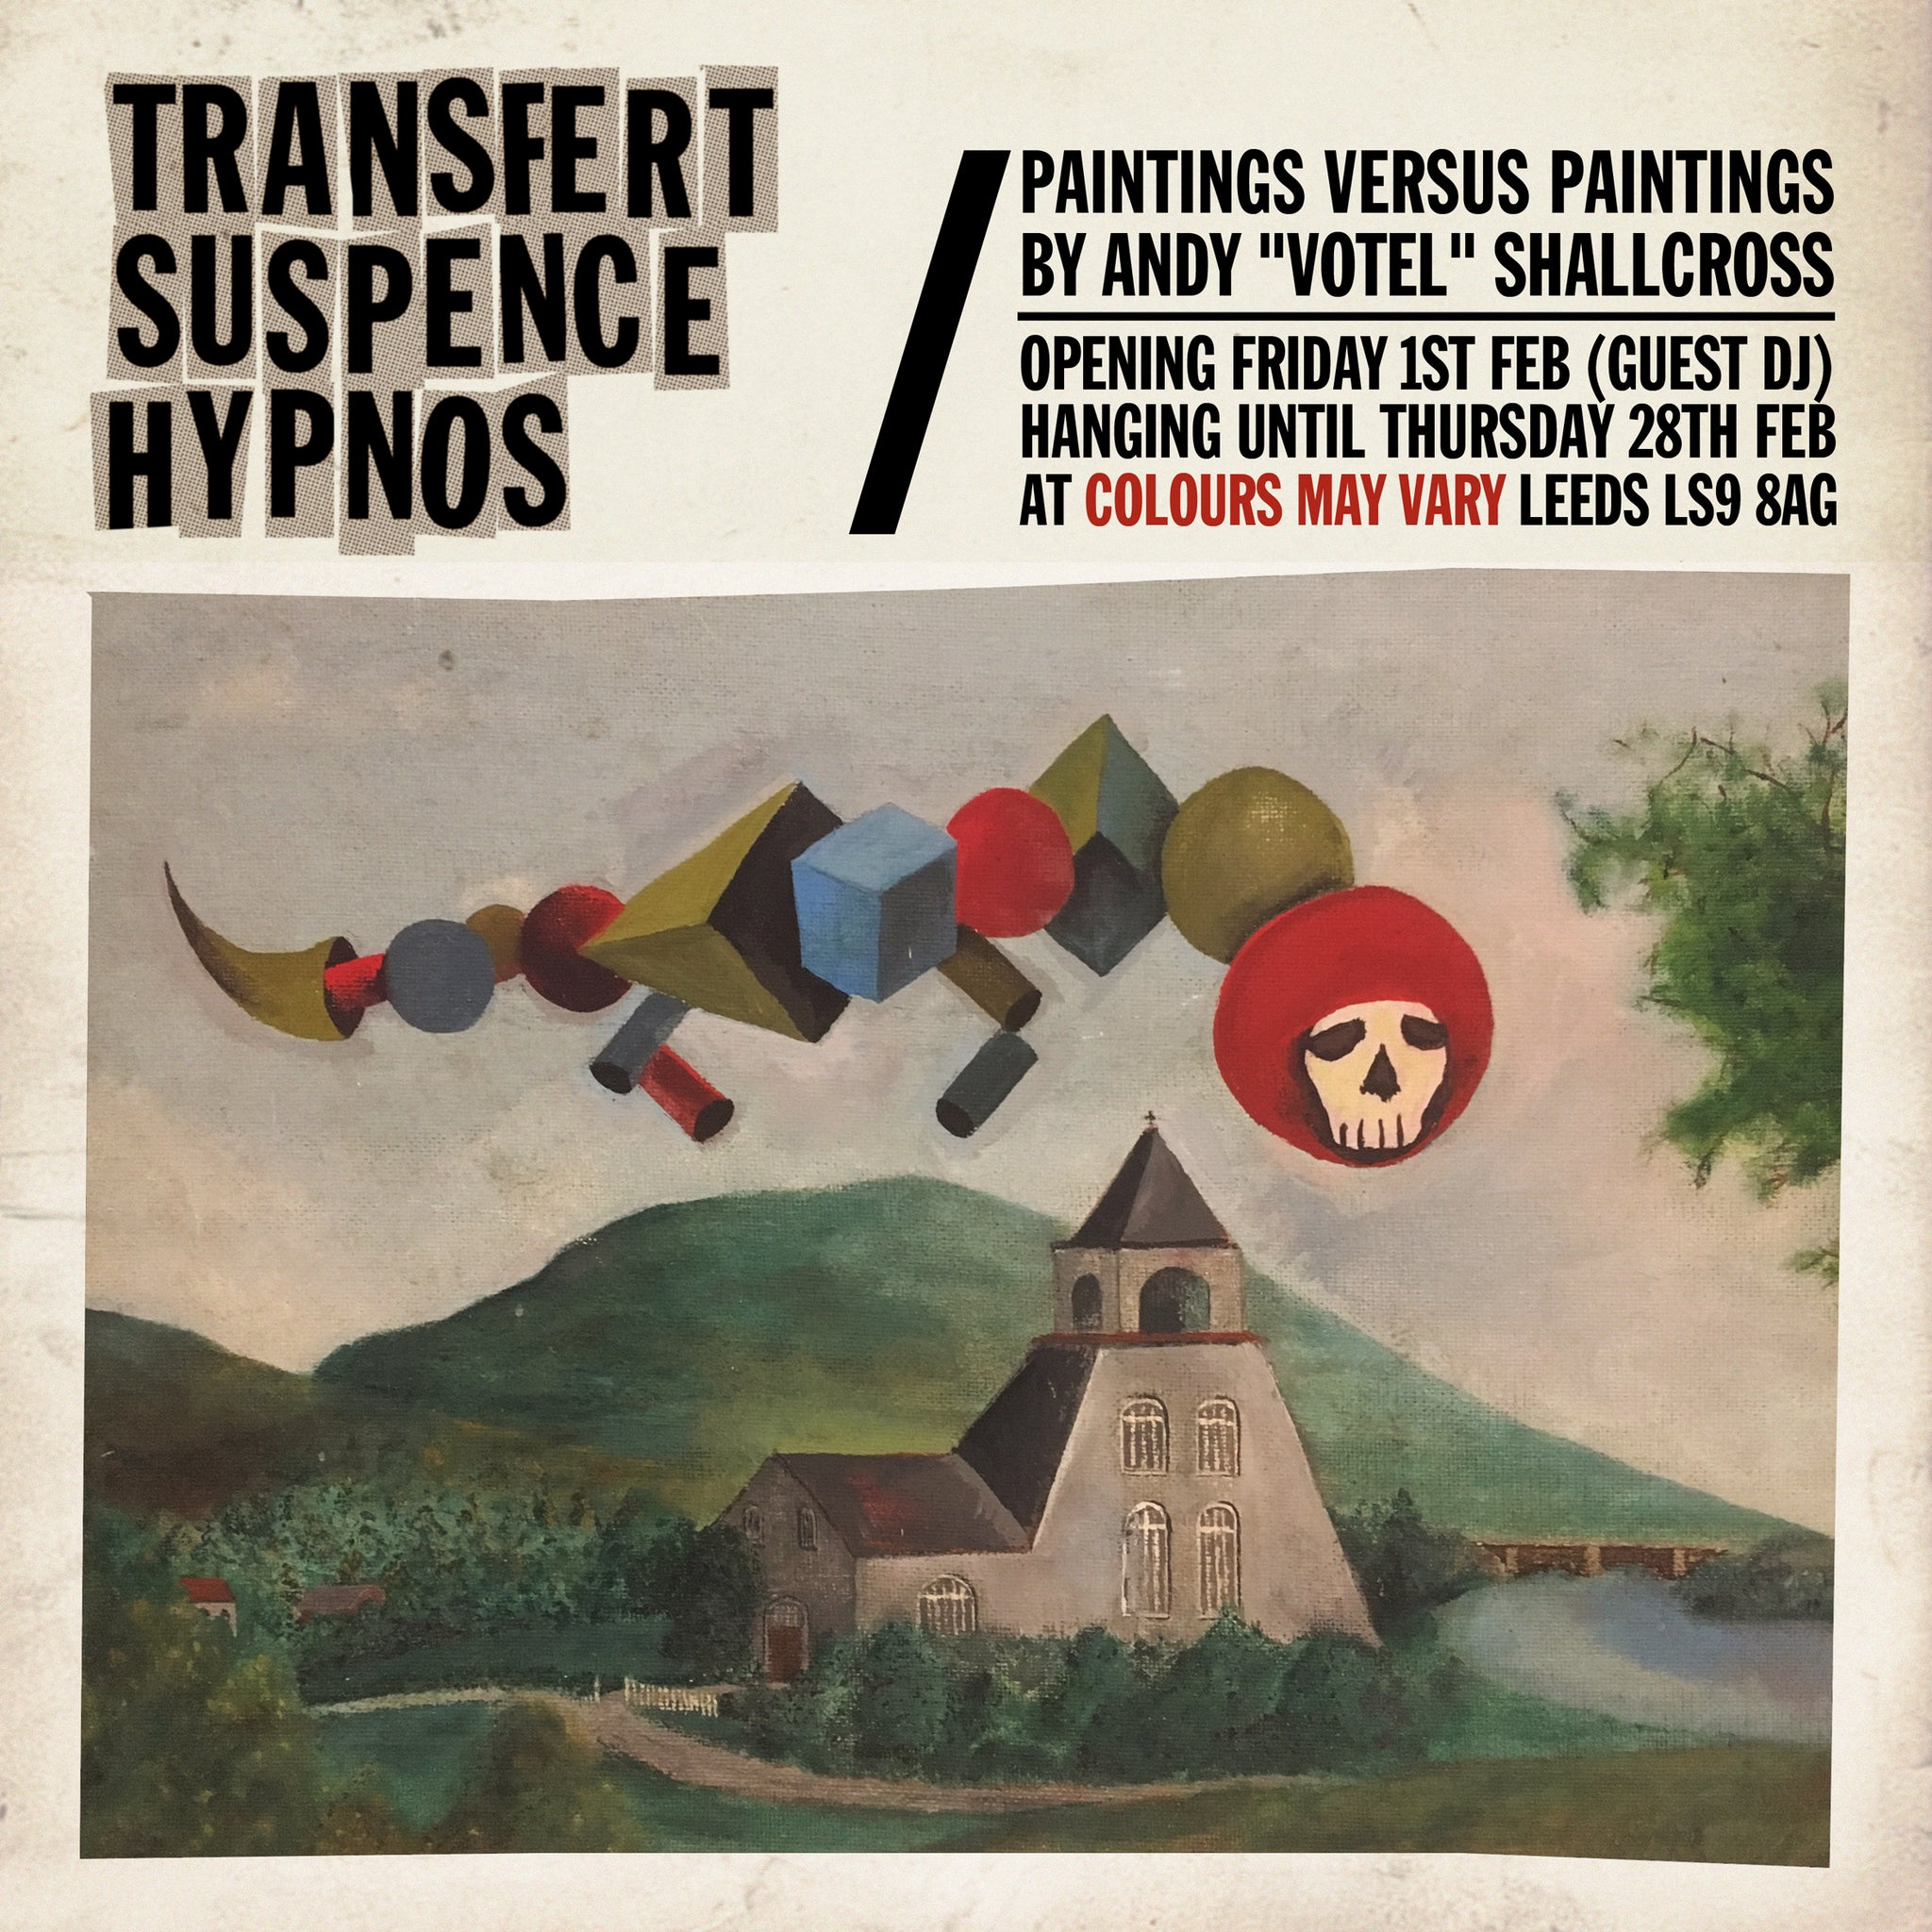 Transfert-Suspence-Hypnos by Andy Votel